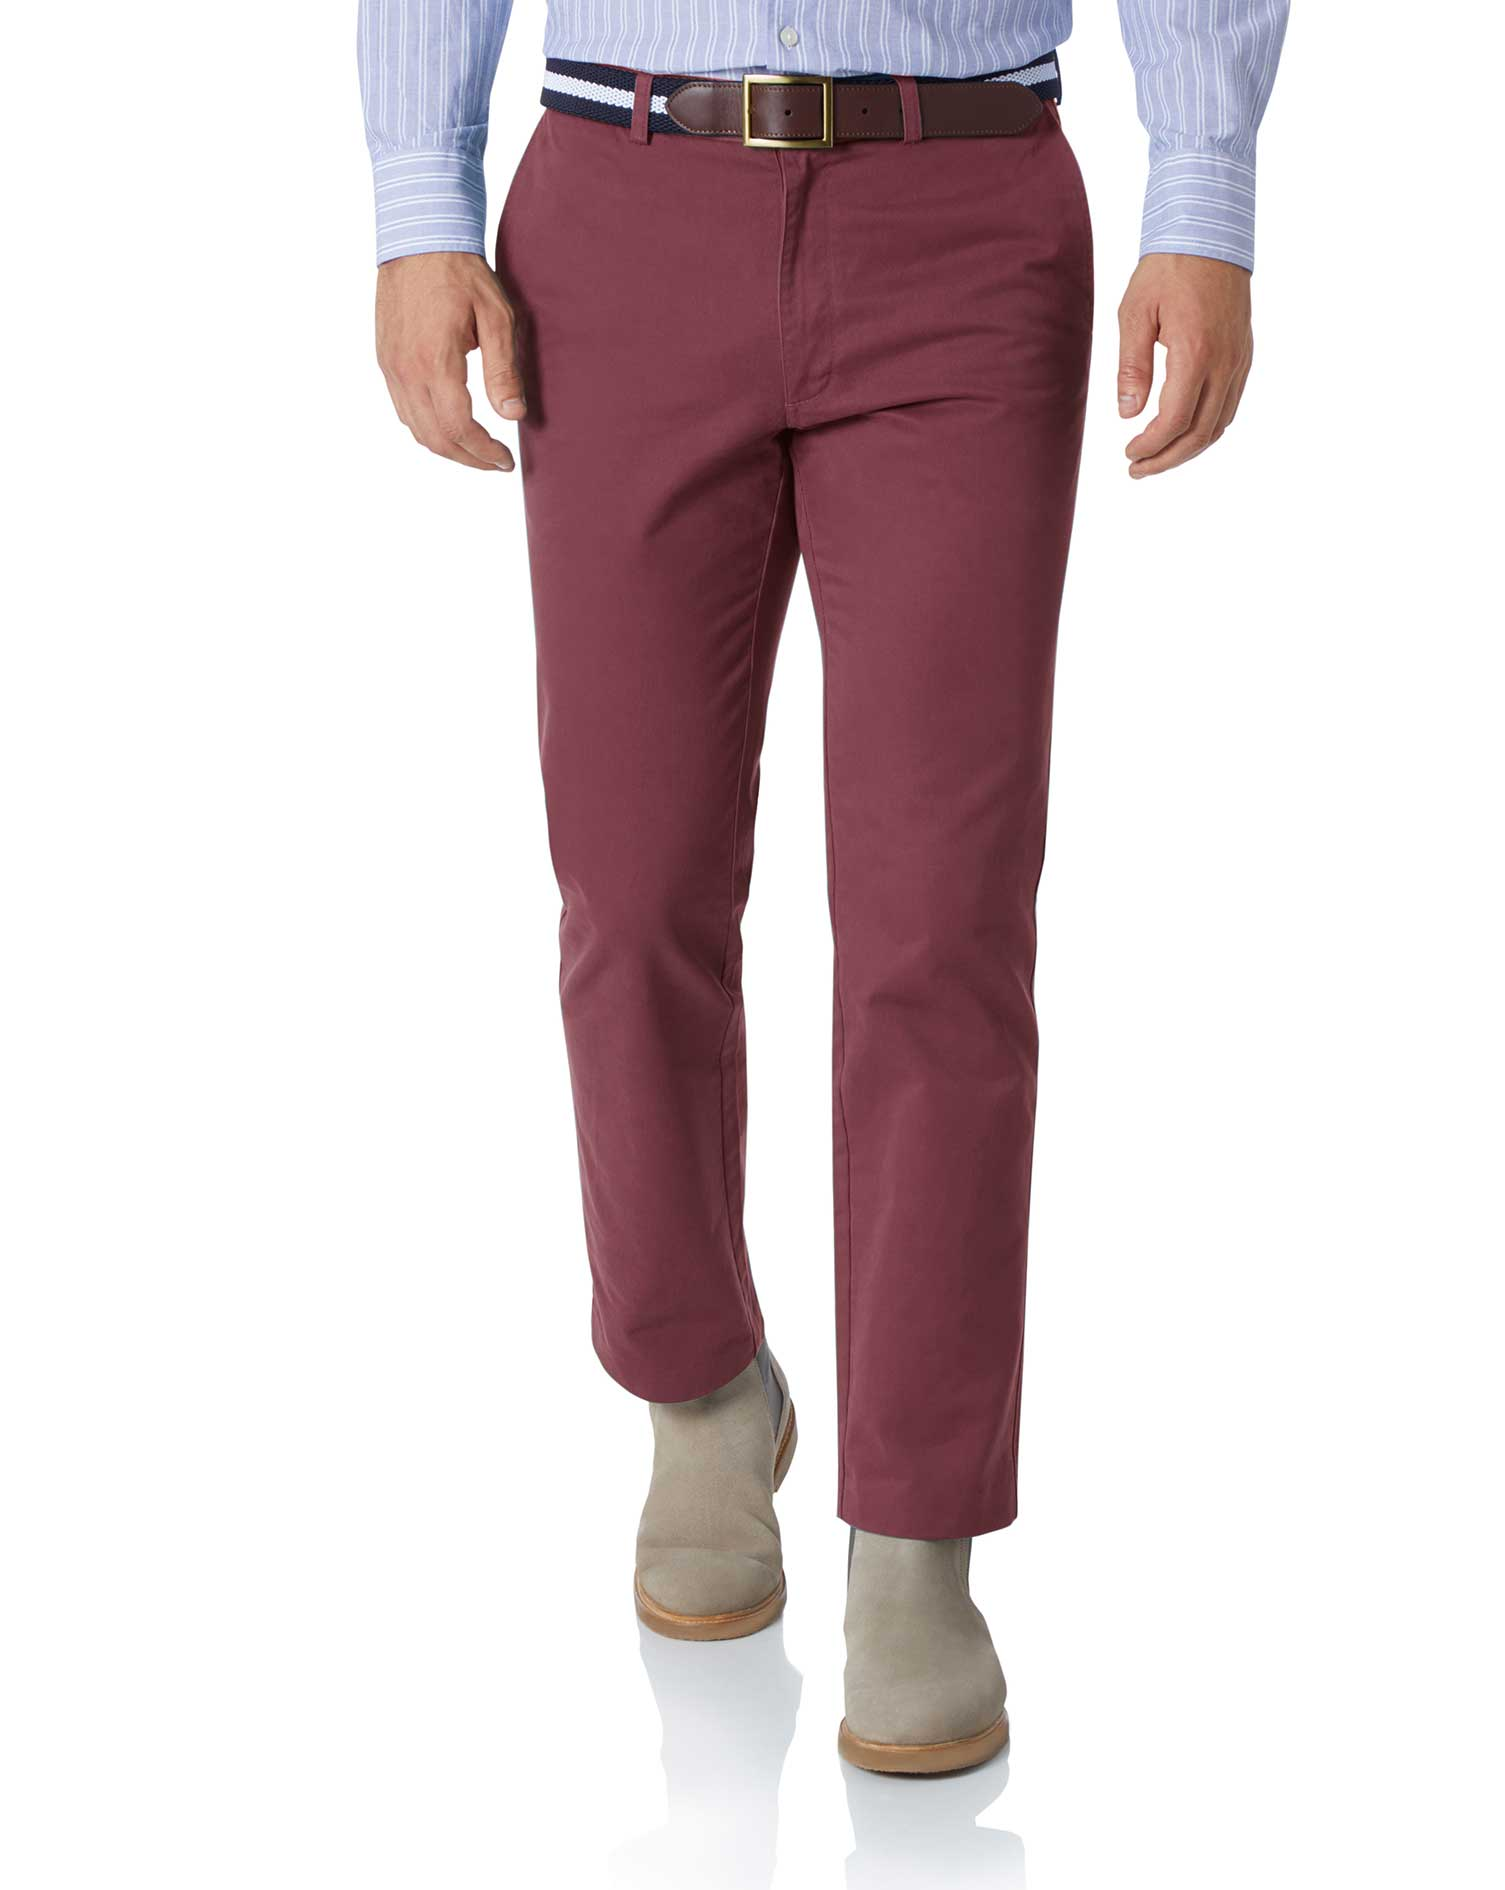 Dark Pink Slim Fit Flat Front Washed Cotton Chino Trousers Size W36 L32 by Charles Tyrwhitt